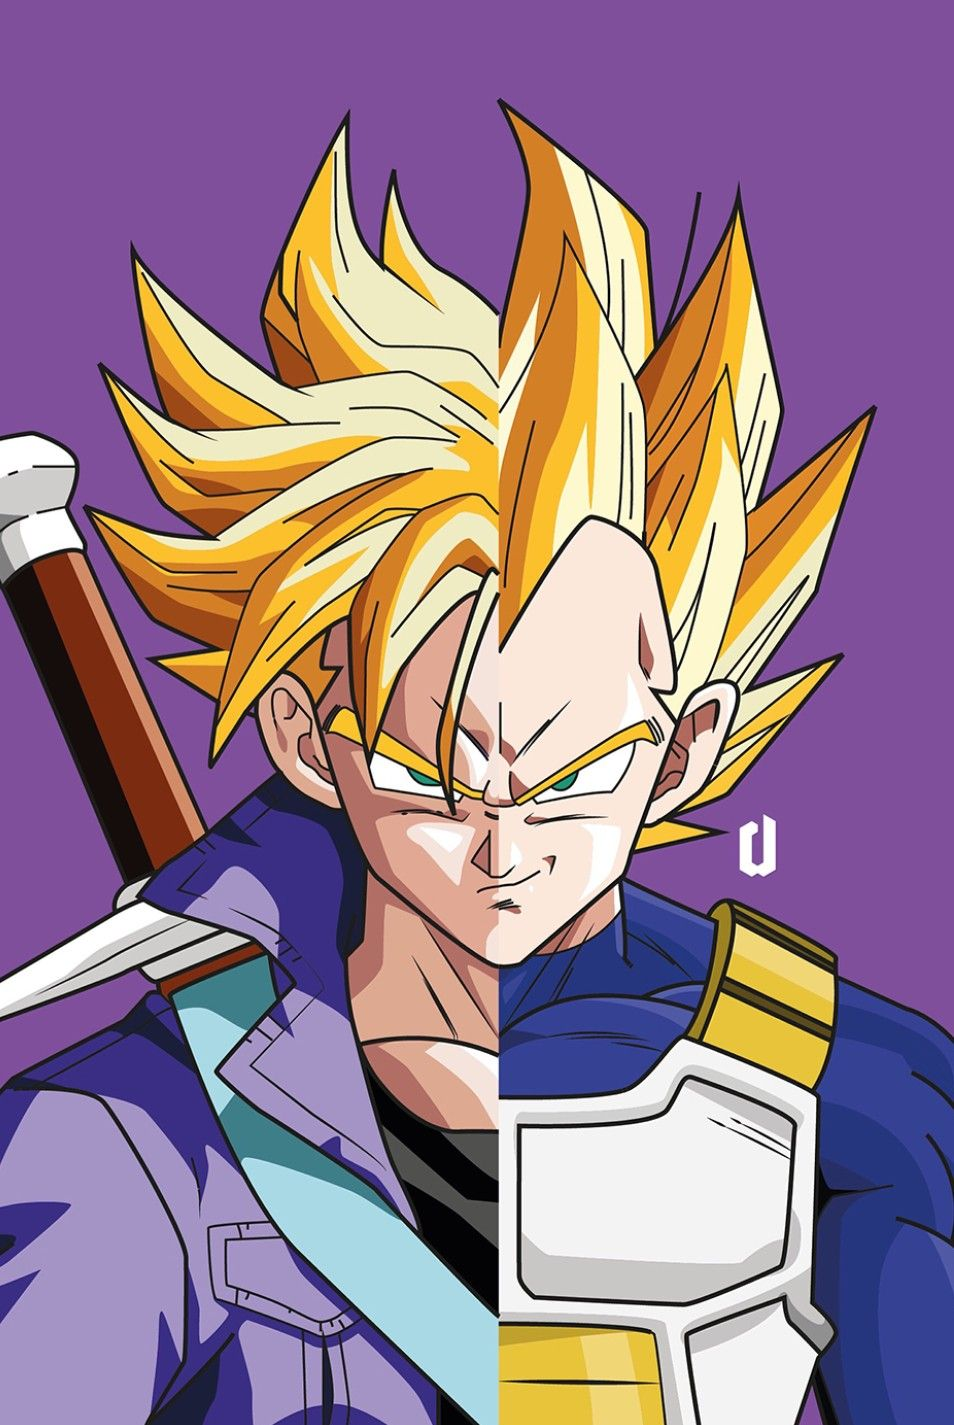 Trunks Vegeta Dragon Ball Z Anime Dragon Ball Super Dragon Ball Super Manga Dragon Ball Artwork